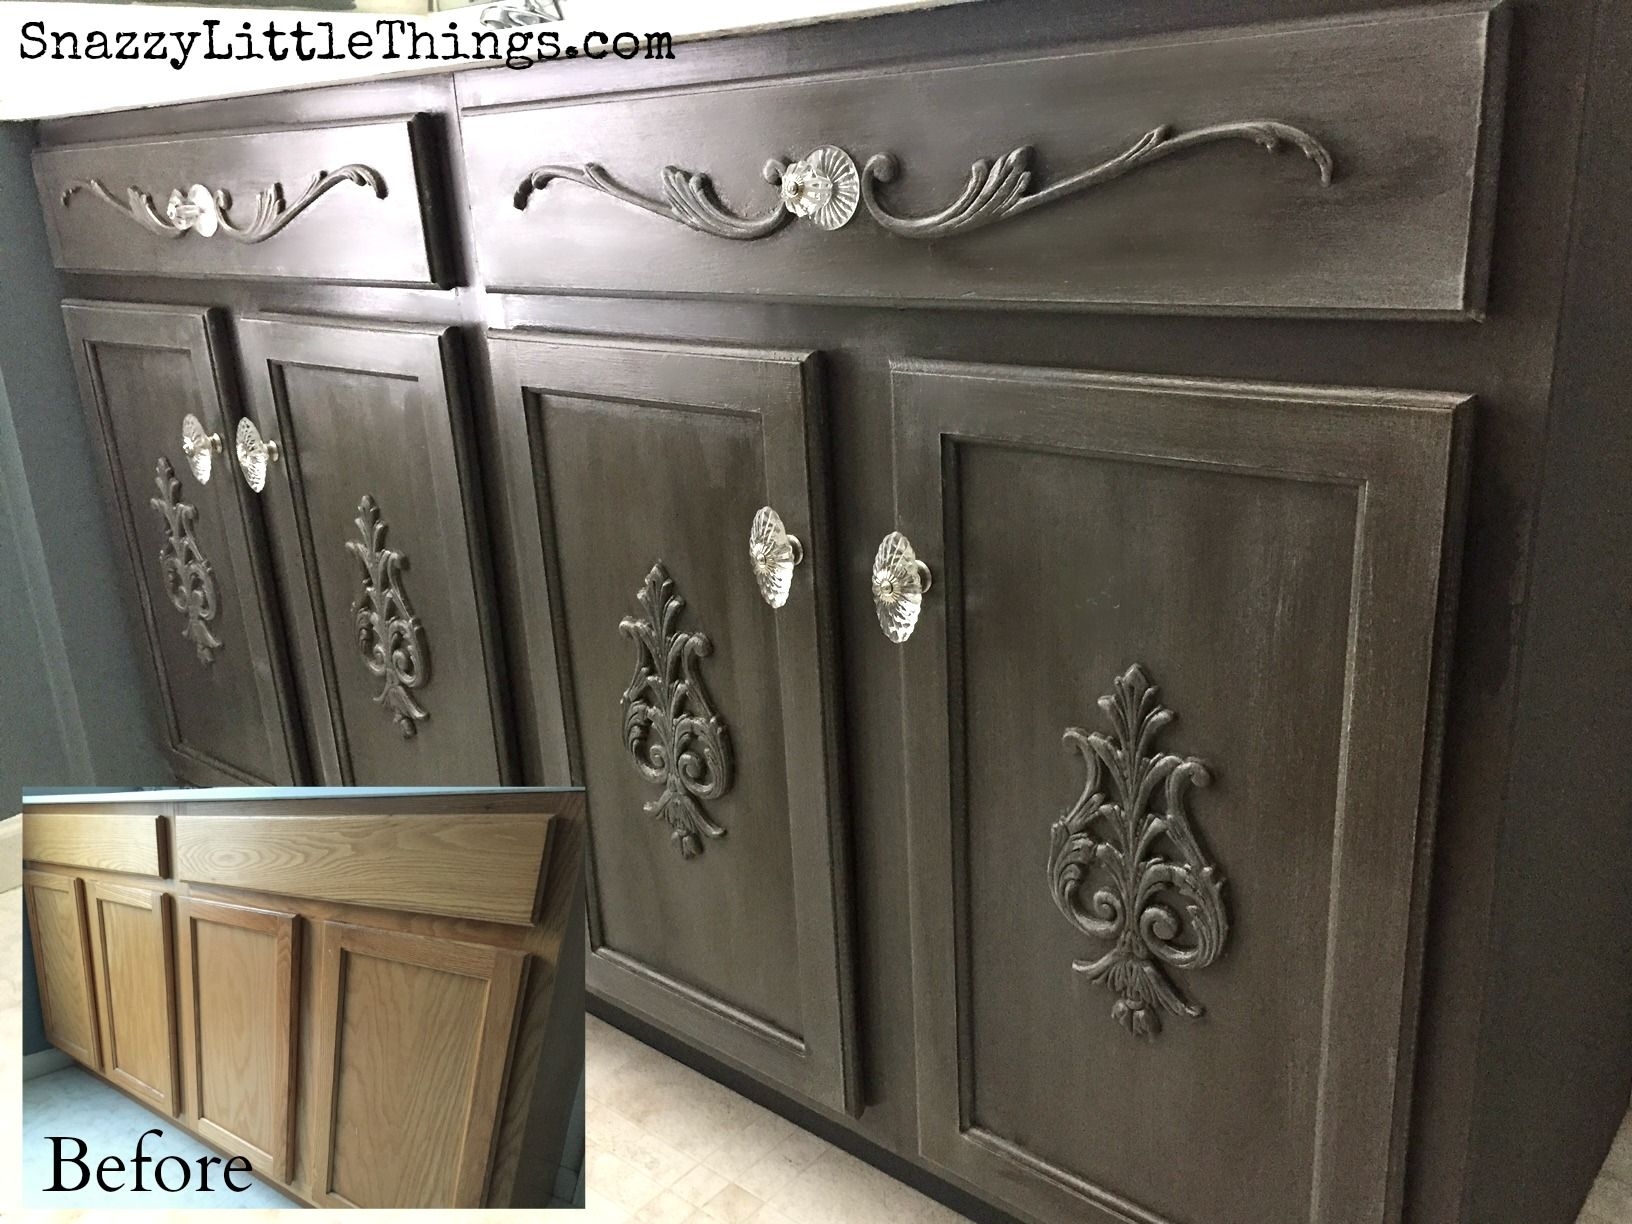 A Builders Grade Vanity Gets Facelift With Paint Wood Embellishments How I Did It Is On The Blog By Snazzylittlethings